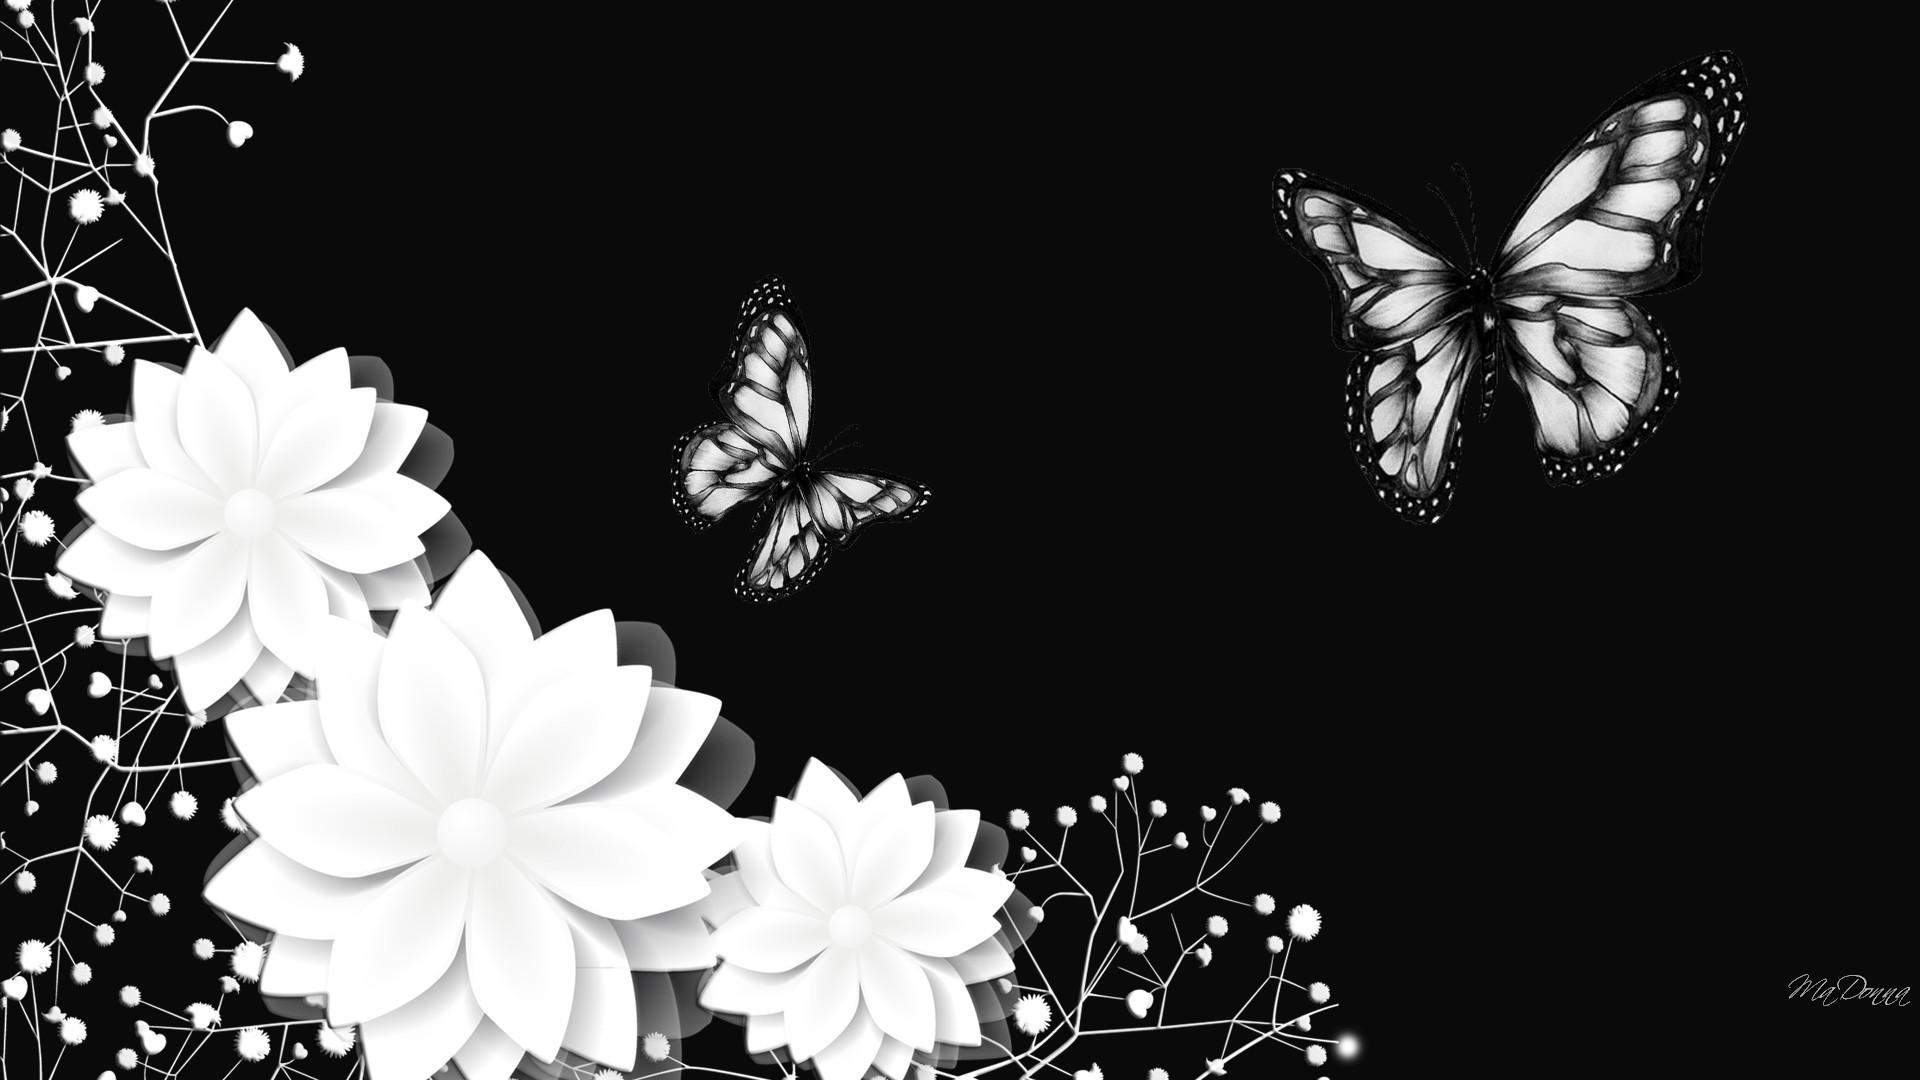 70 HD Black And White Wallpapers For Free Download ...